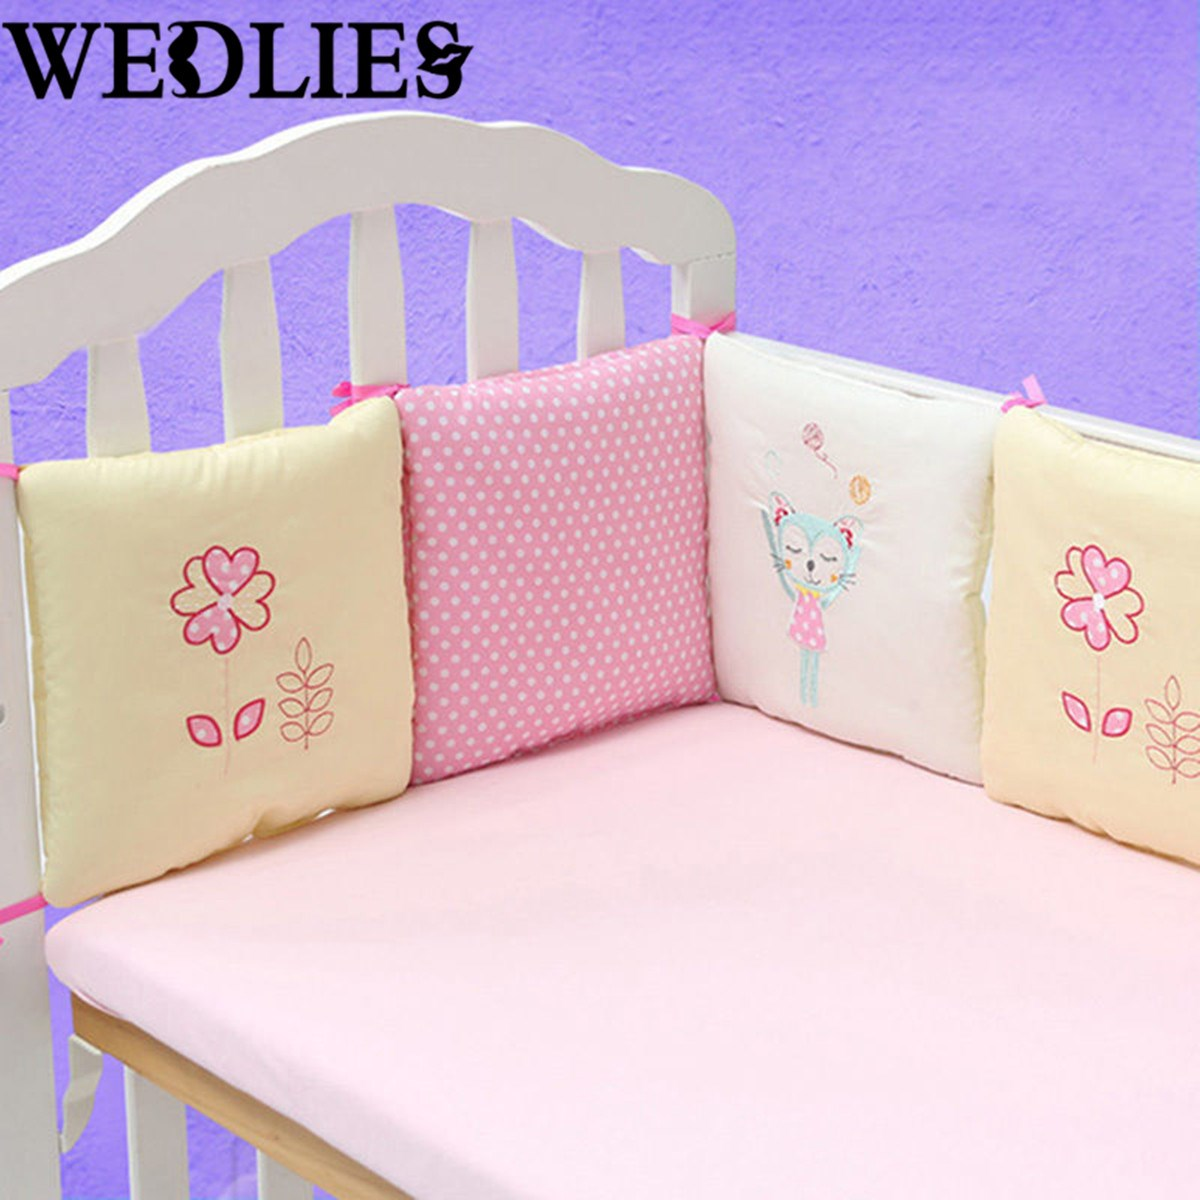 Crib protector for babies - 6pcs Set Baby Infant Cot Crib Bumper Safety Protector Toddler Nursery Bedding Set Baby Sleeping